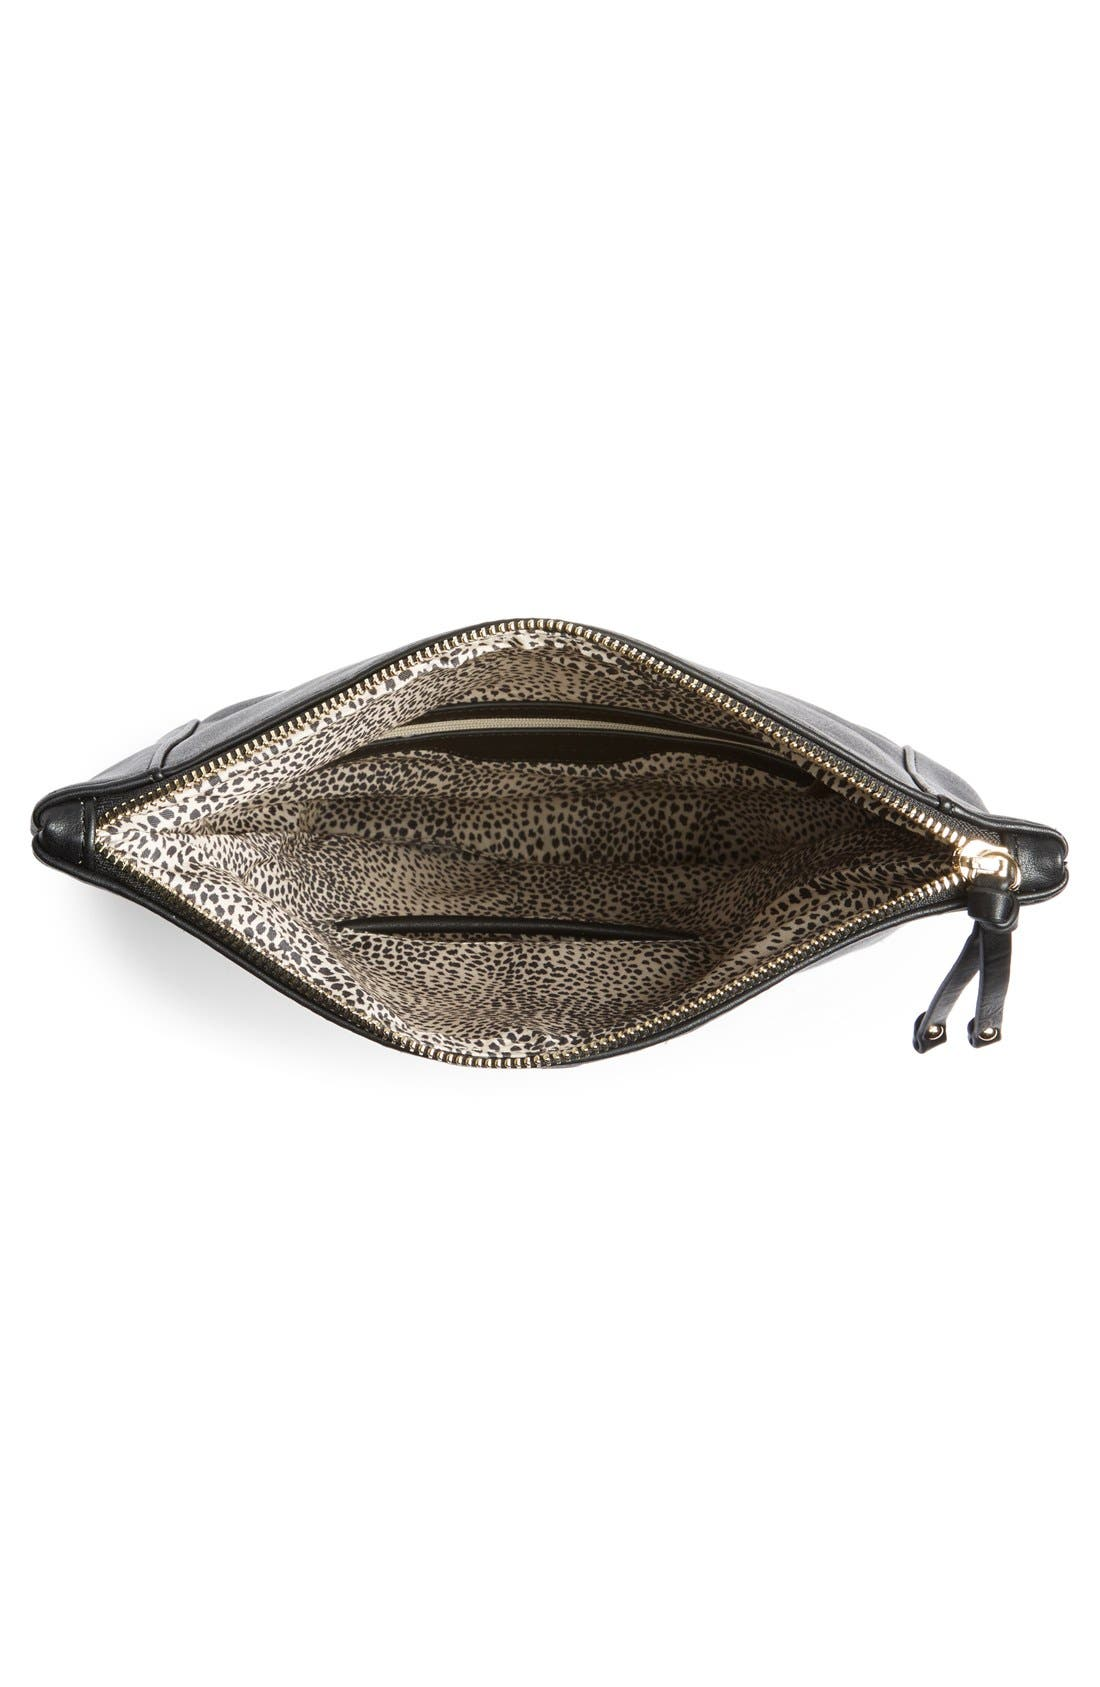 Alternate Image 3  - Sole Society 'Marlena' Faux Leather Foldover Clutch